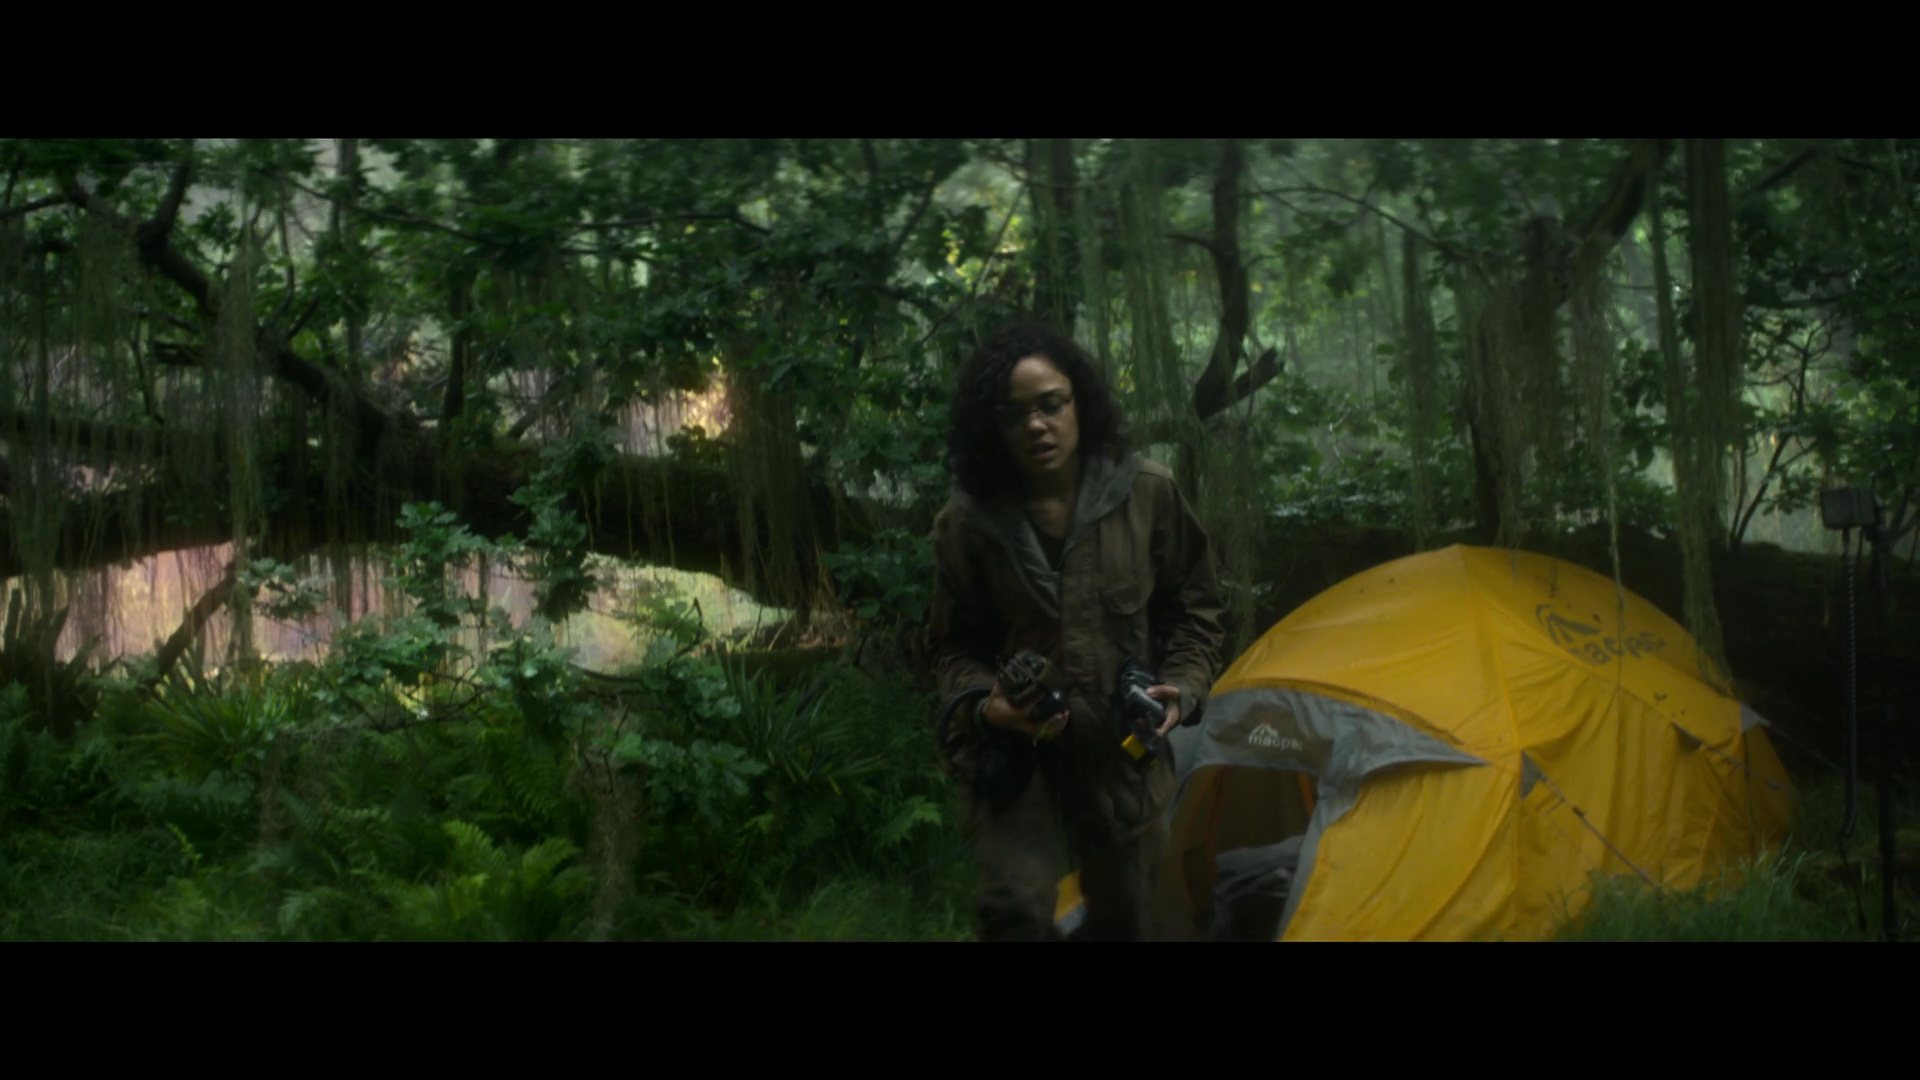 Name Animation Wallpaper Macpac Yellow Tent Used By Tessa Thompson In Annihilation